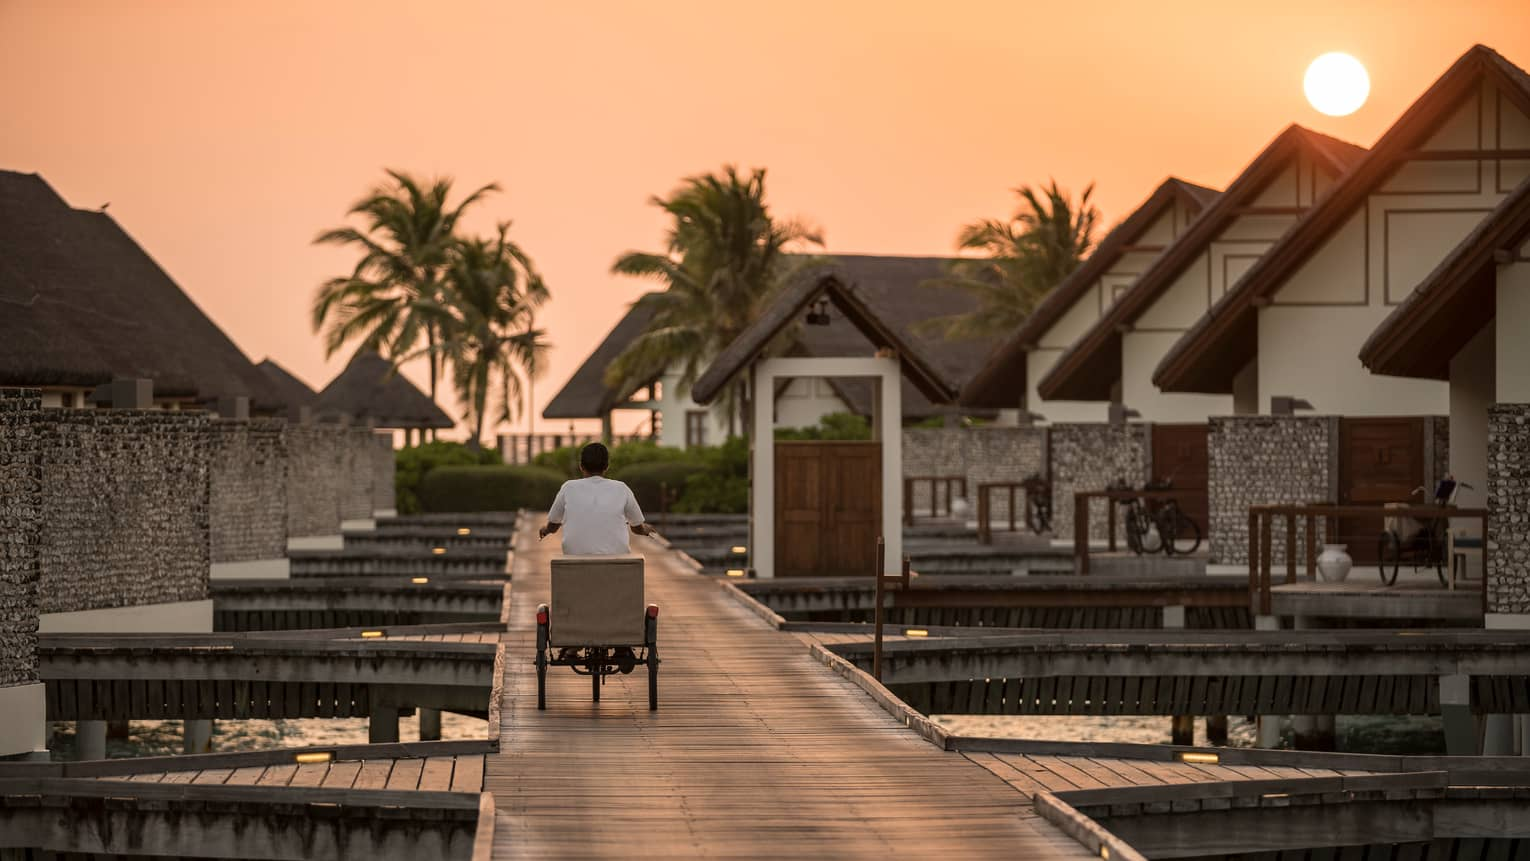 Back of man riding breakfast delivery cart along wood walkway connecting overwater bungalows at sunrise